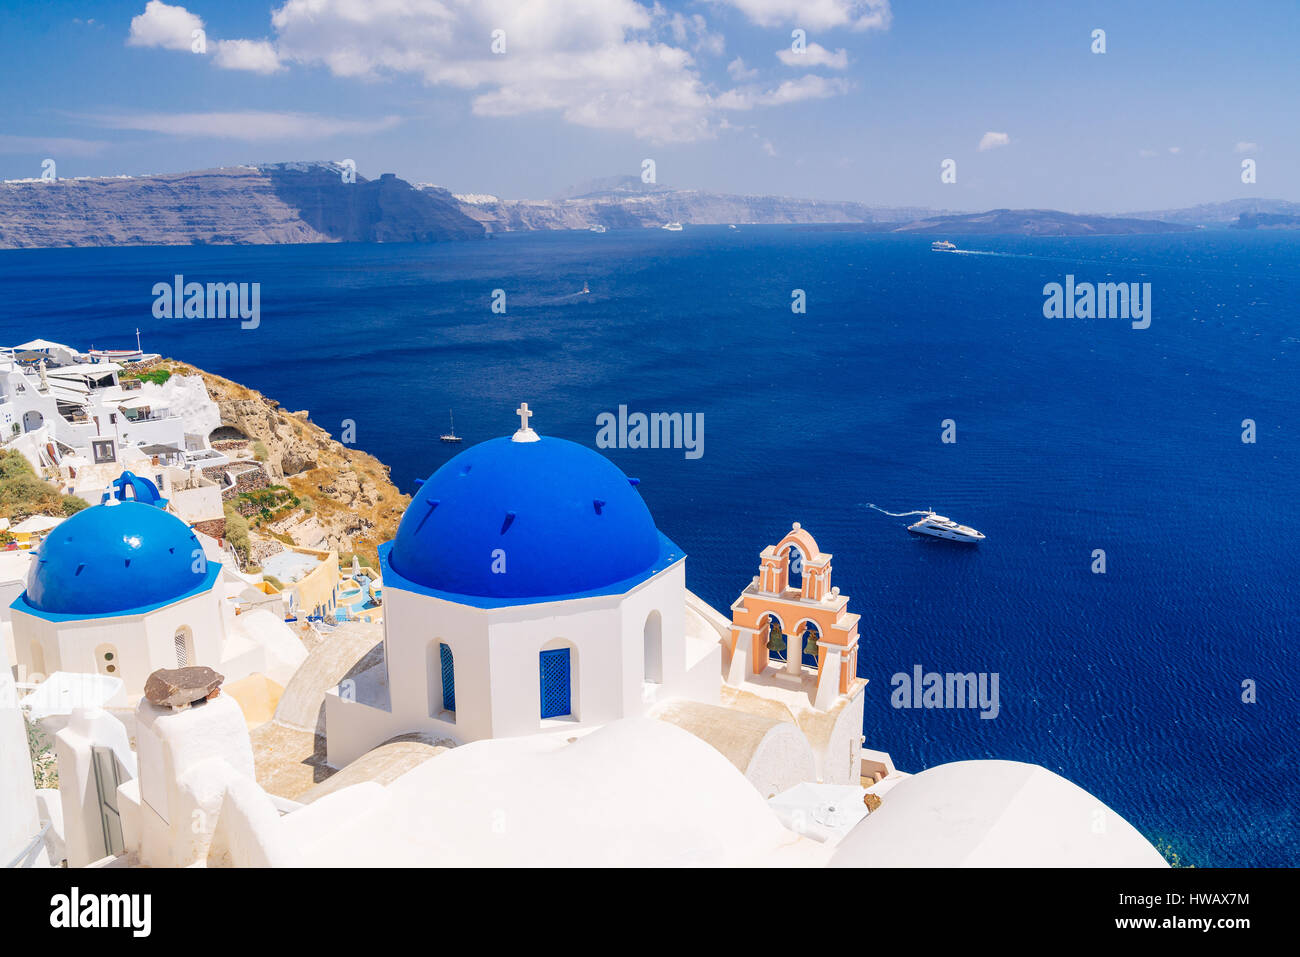 Wolrd famous blue dome churches in Oia, Santorini, Greece - Stock Image